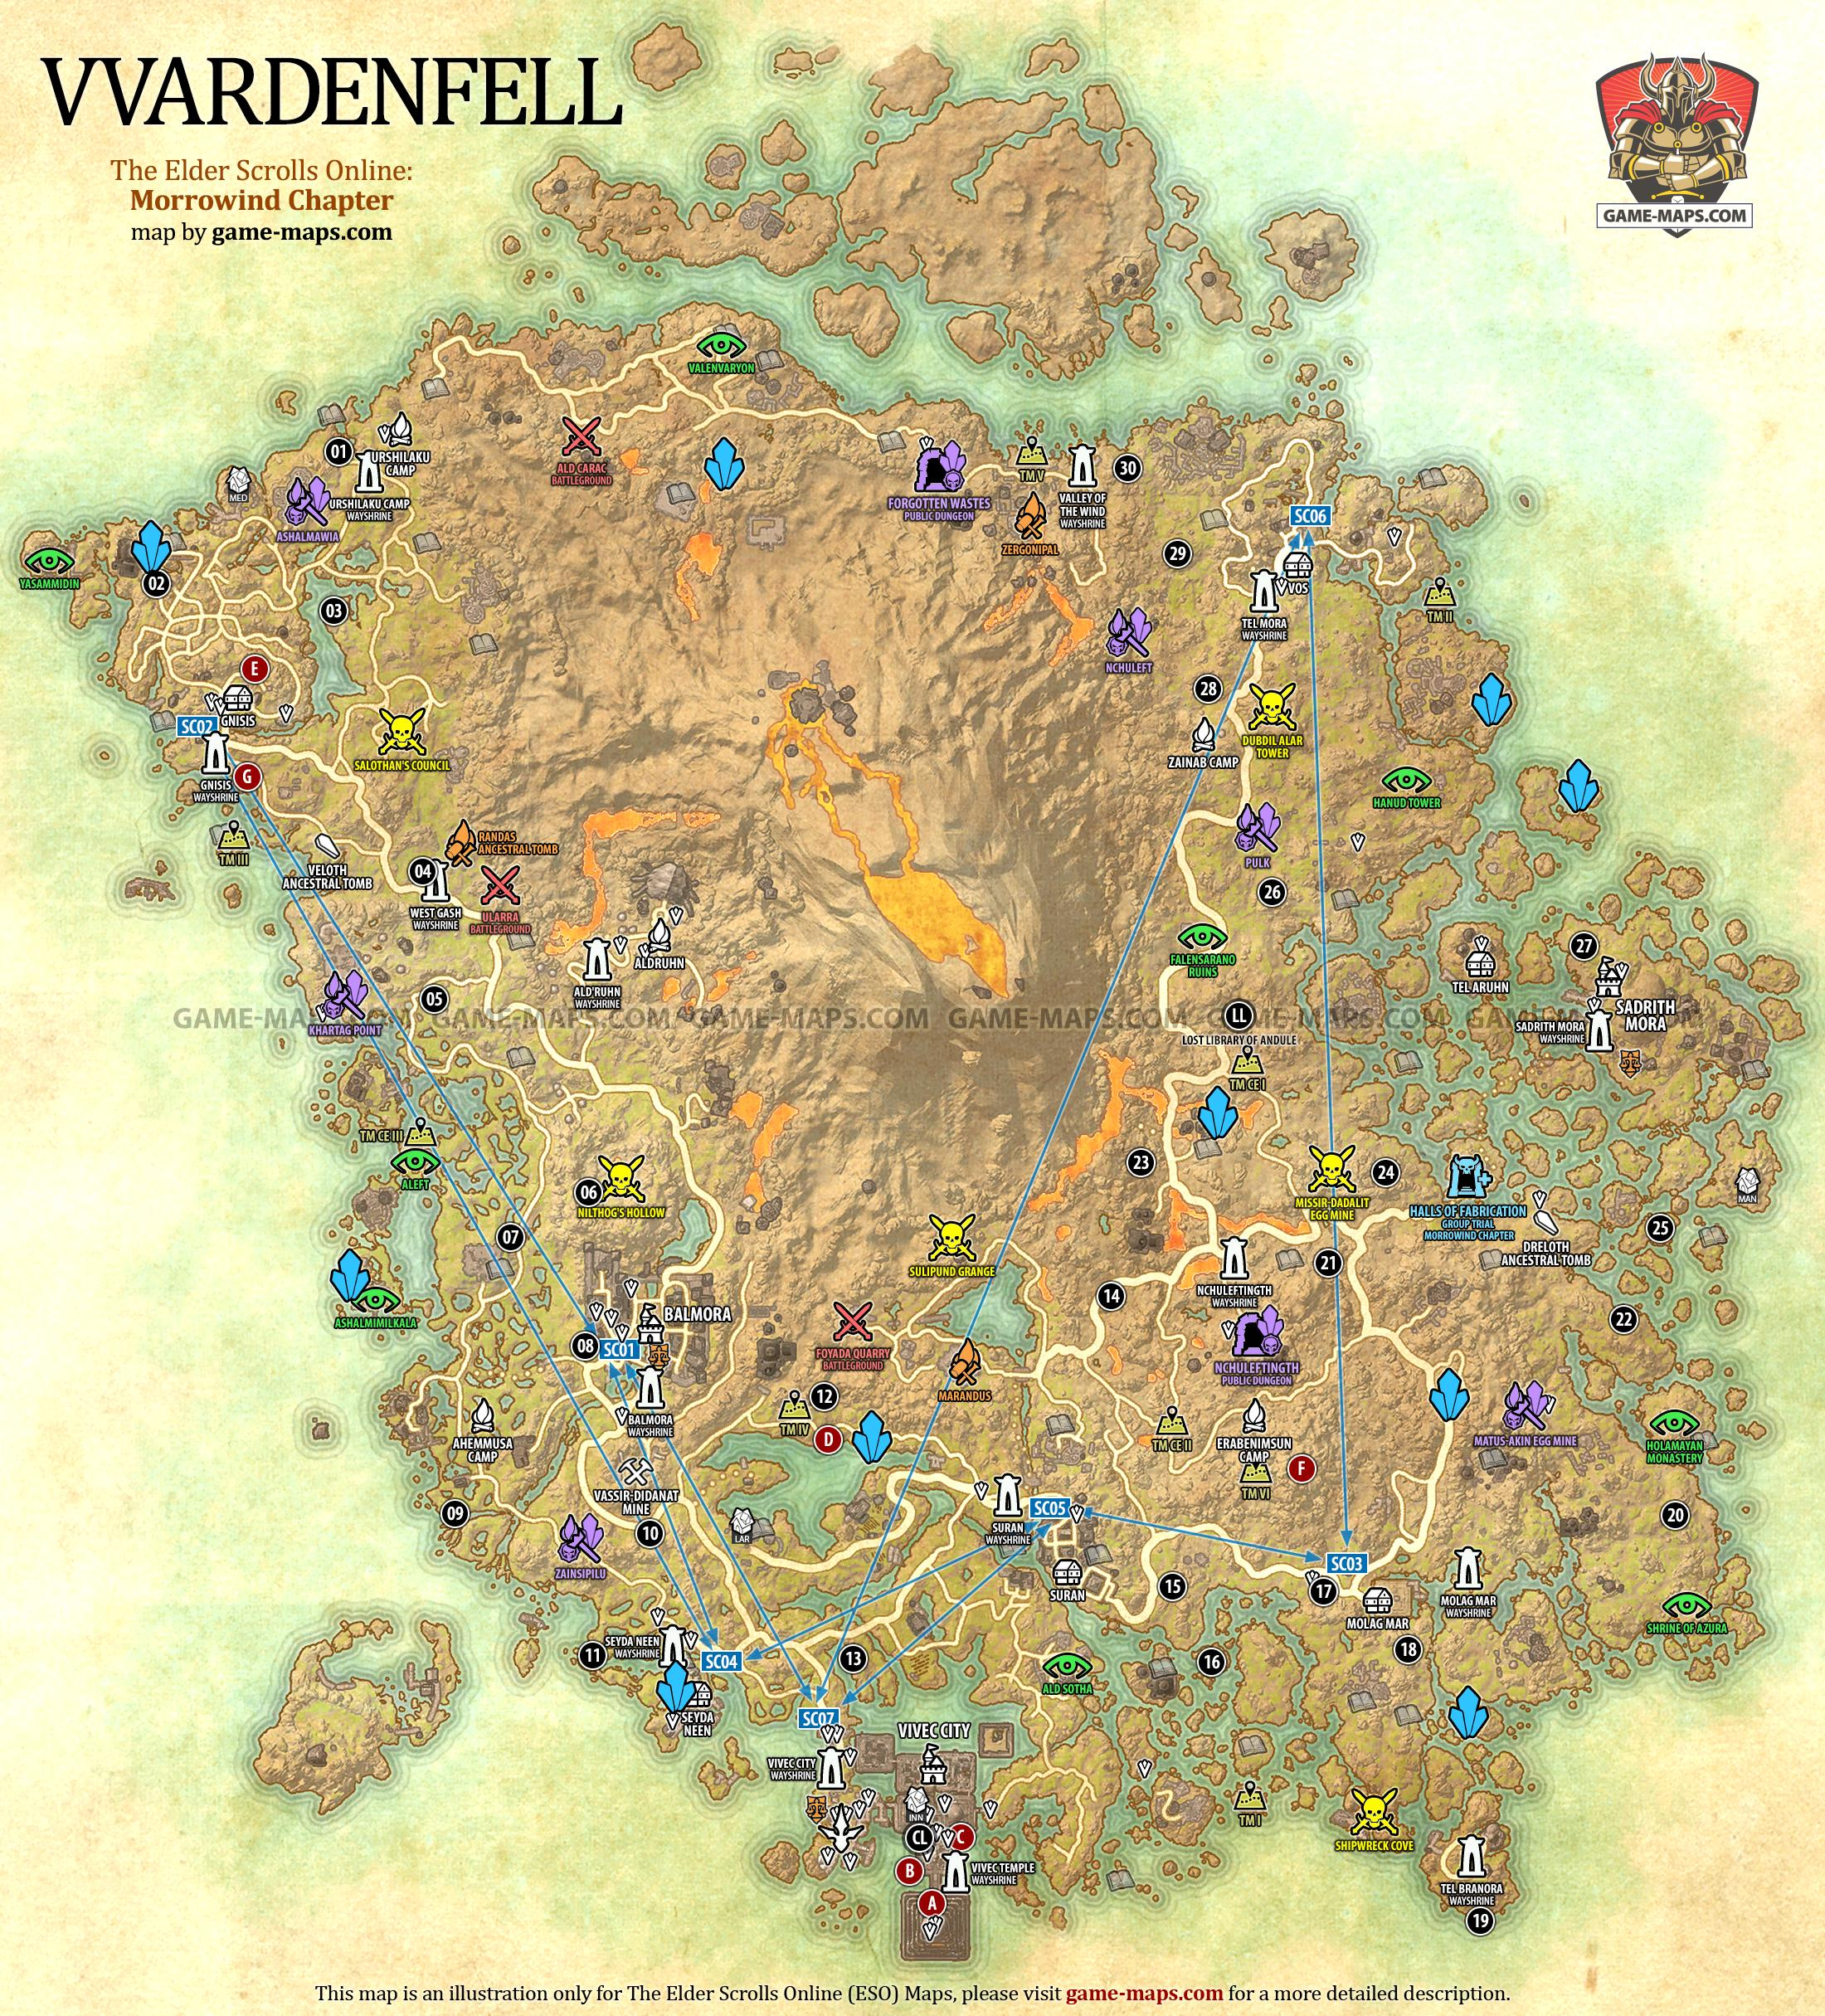 Vvardenfell map eso morrowind the elder scrolls online game vvardenfell zone map the elder scrolls online morrowind eso maps guides walkthroughs gumiabroncs Choice Image